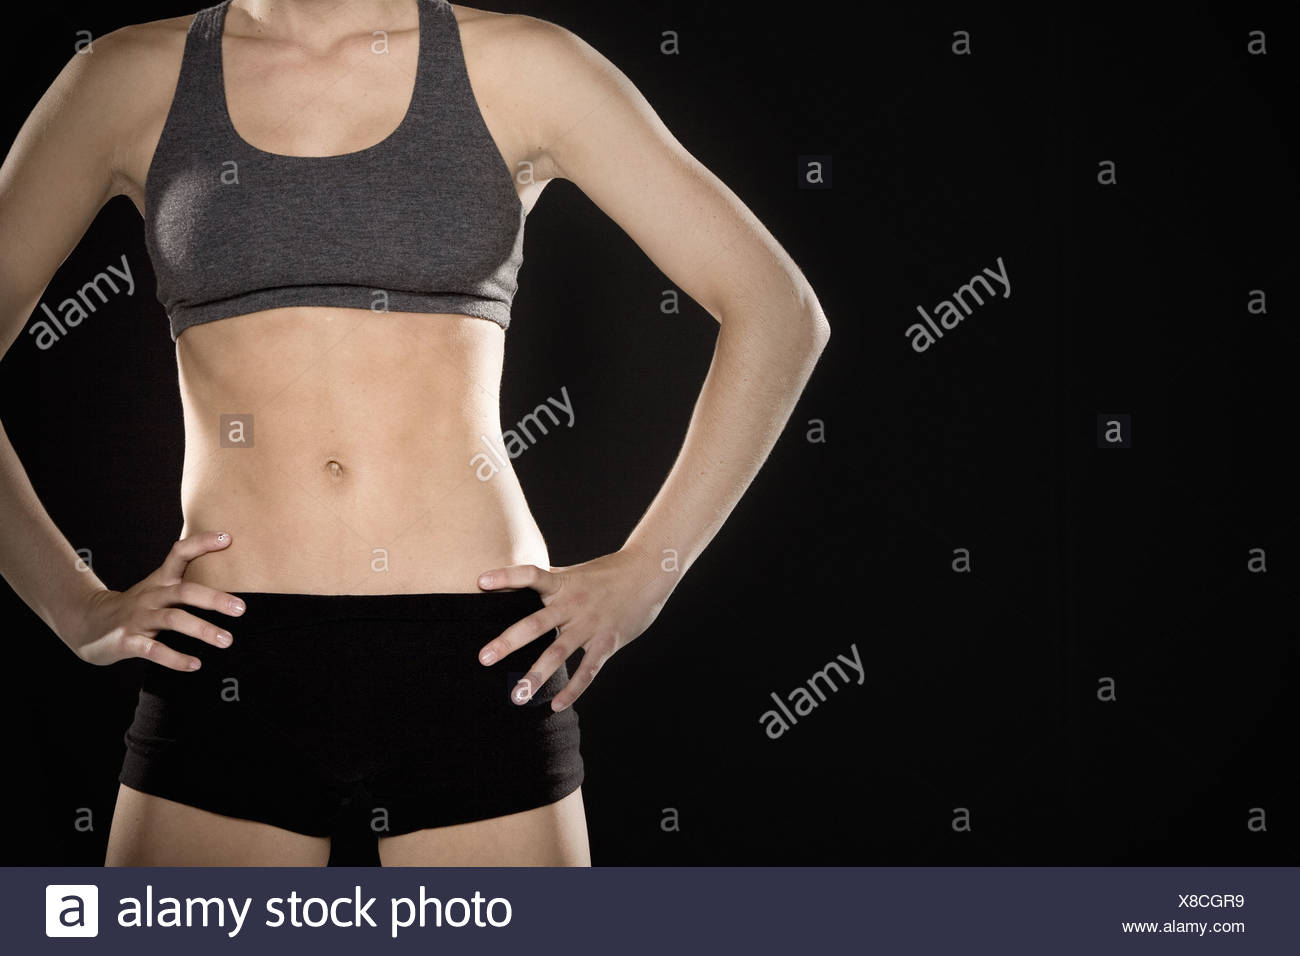 Woman in athletic gear with hands on hips - Stock Image